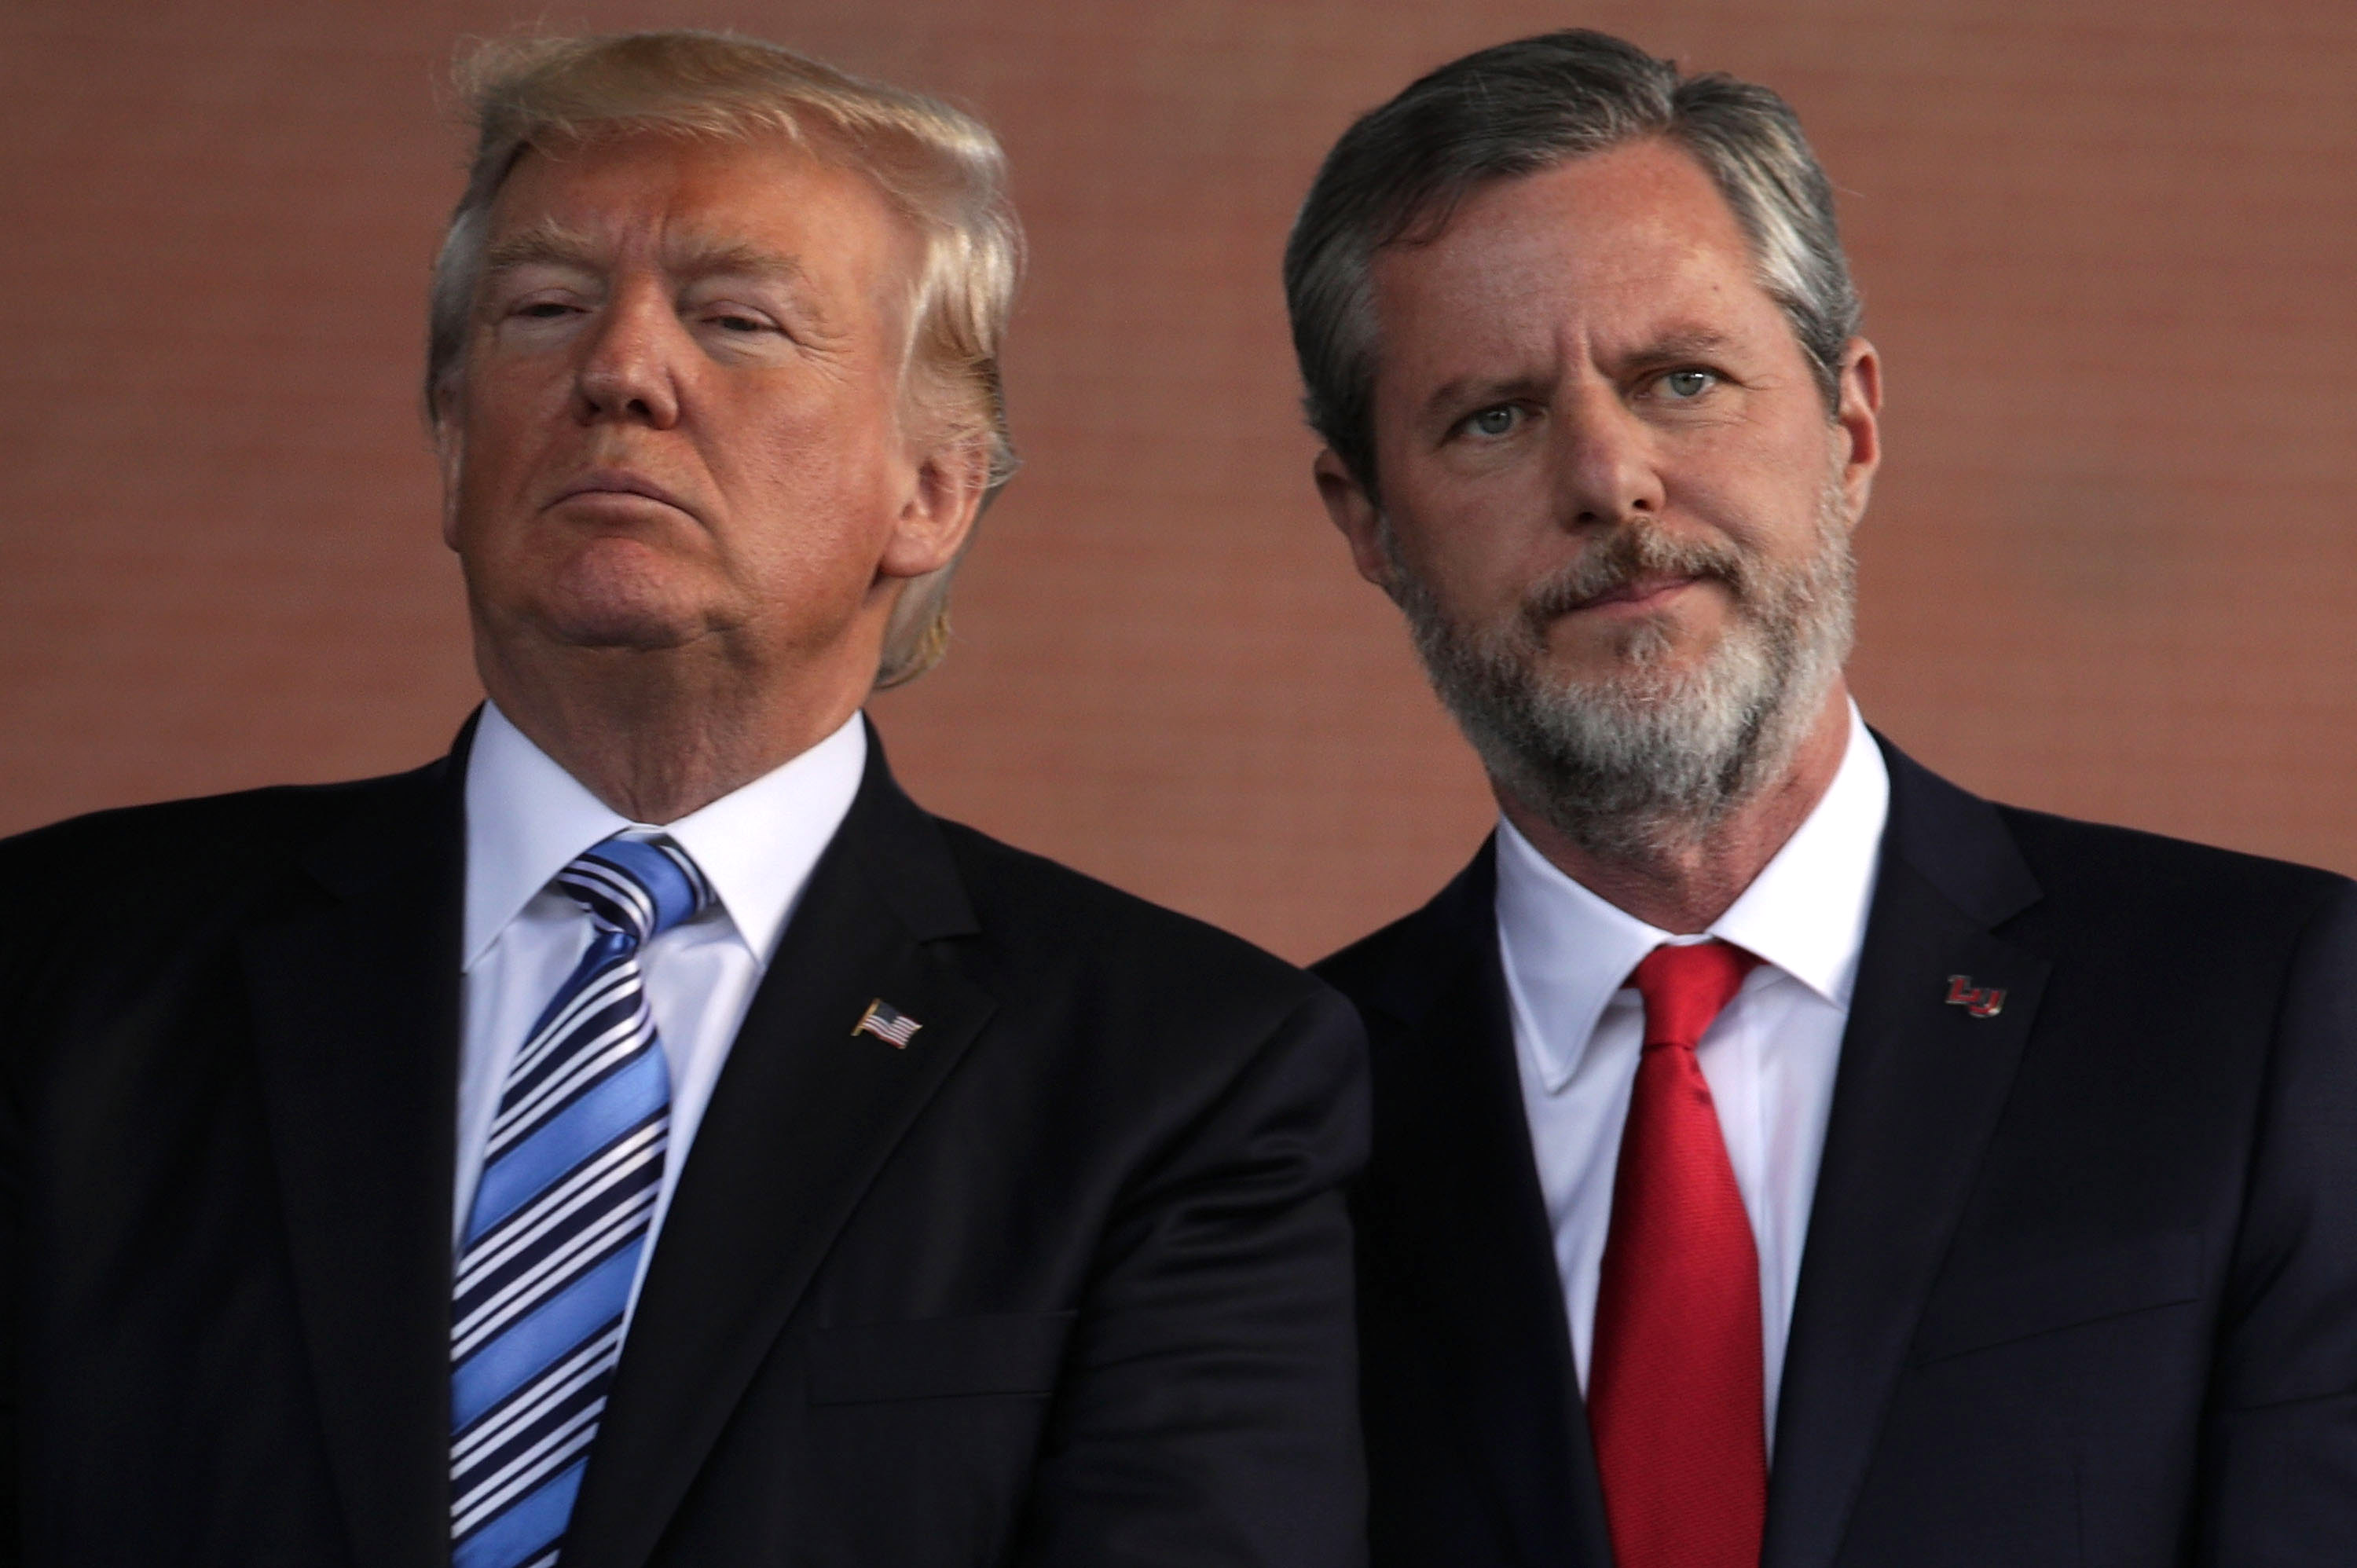 The Trump Prophecy: the Liberty University-affiliated film that promotes Christian nationalism